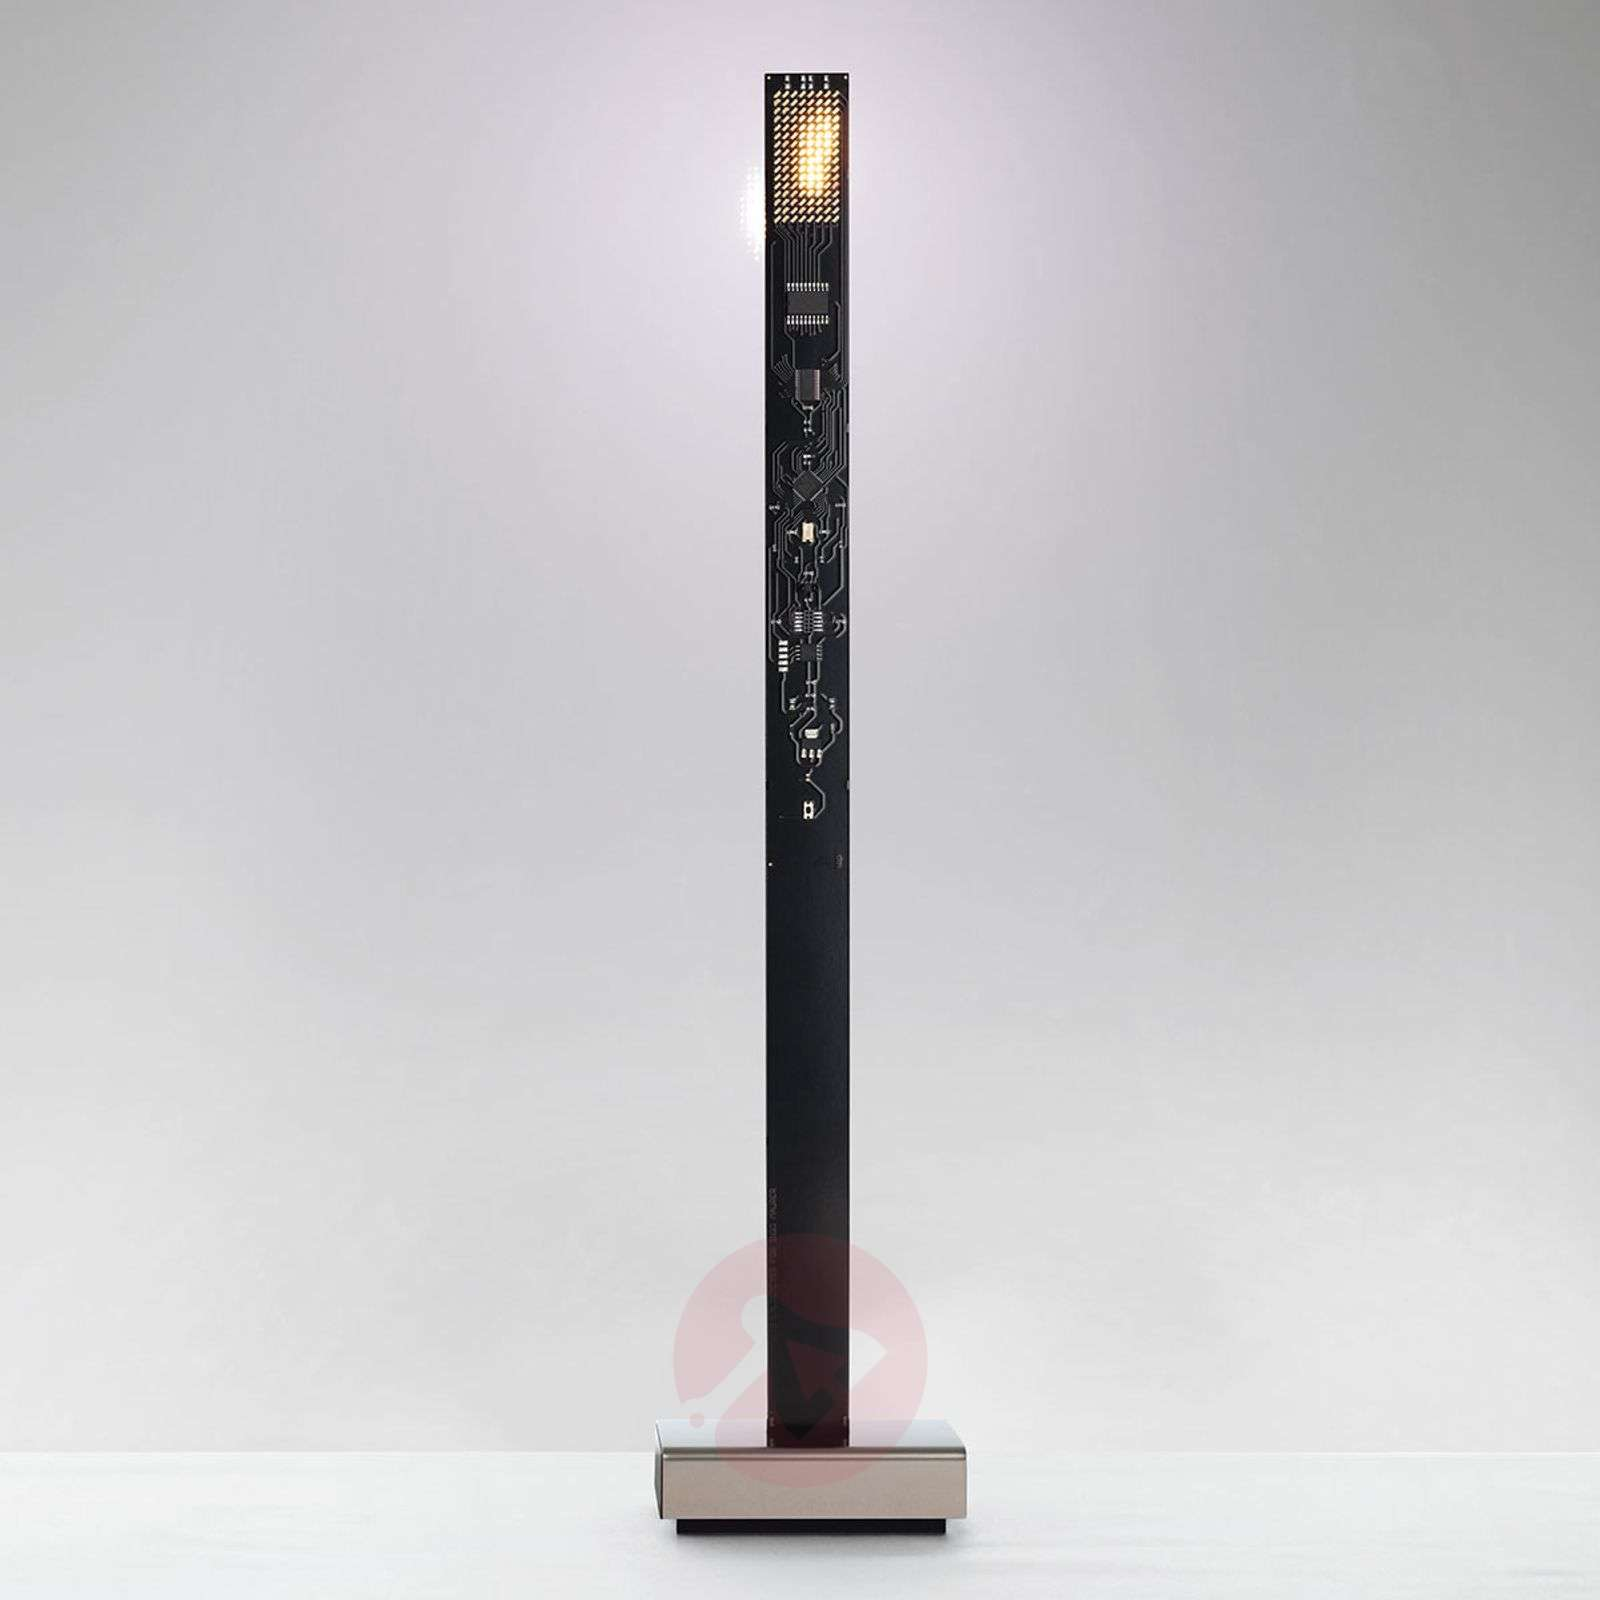 My New Flame innovative LED table lamp-5026081X-01